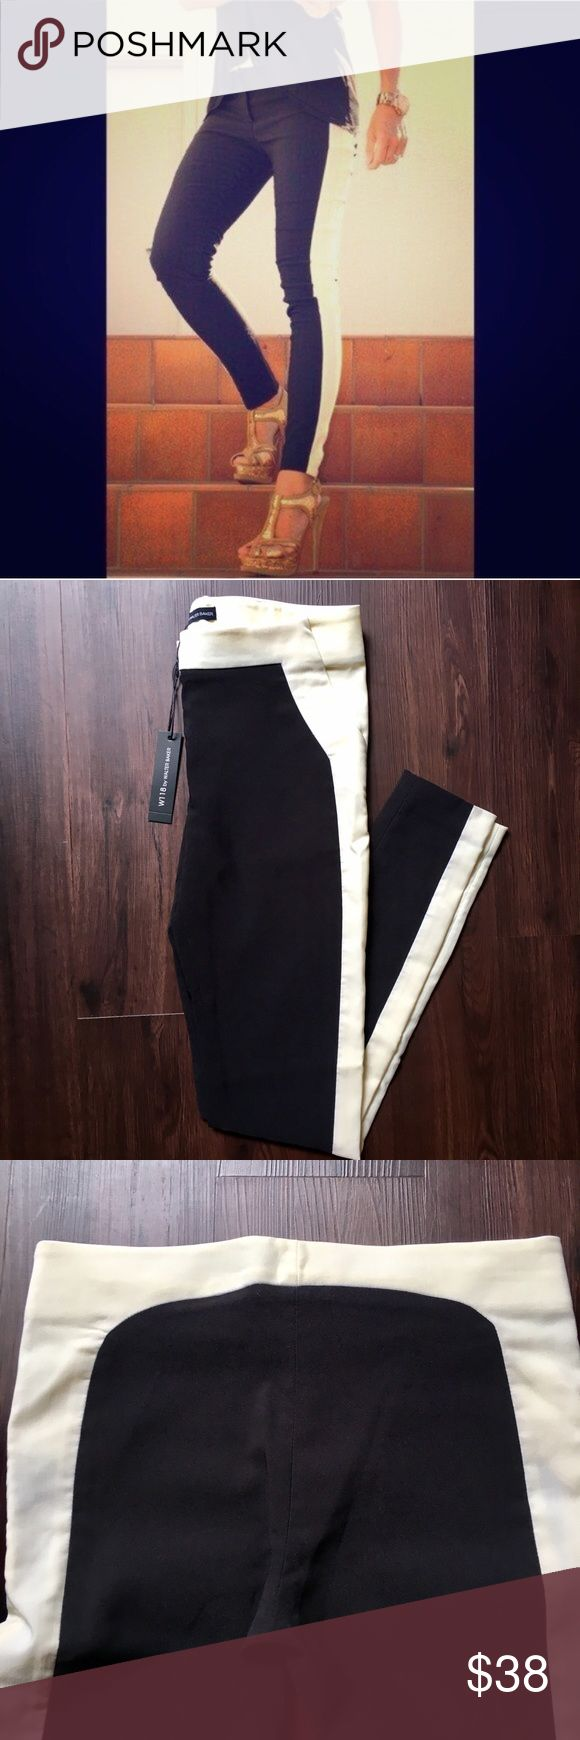 NWT! W118 by Walter Baker skinny pants New with tags. Originally $158. W118 by Walter Baker Pants Skinny